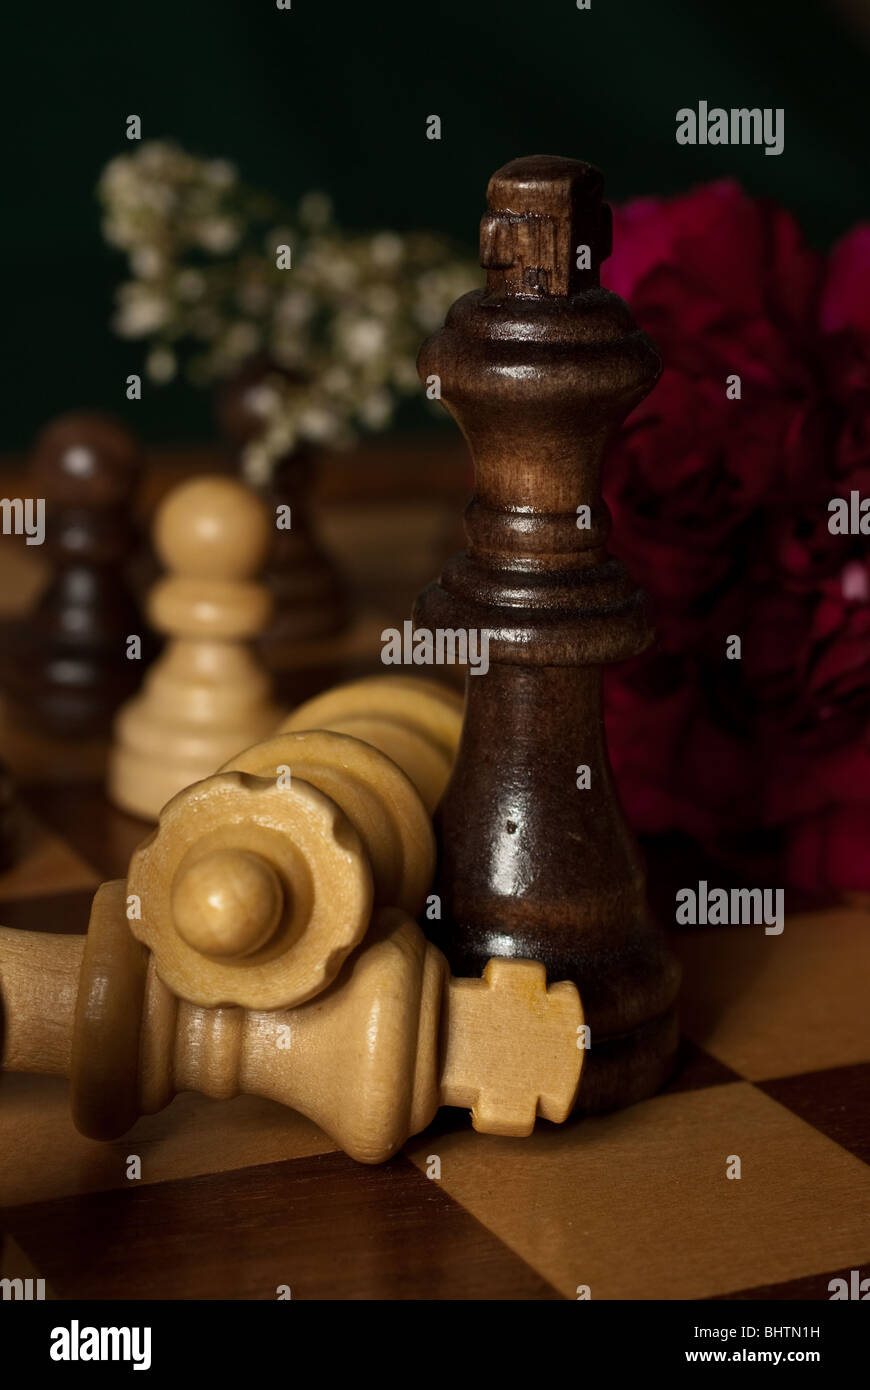 Fallen chess pieces - Stock Image